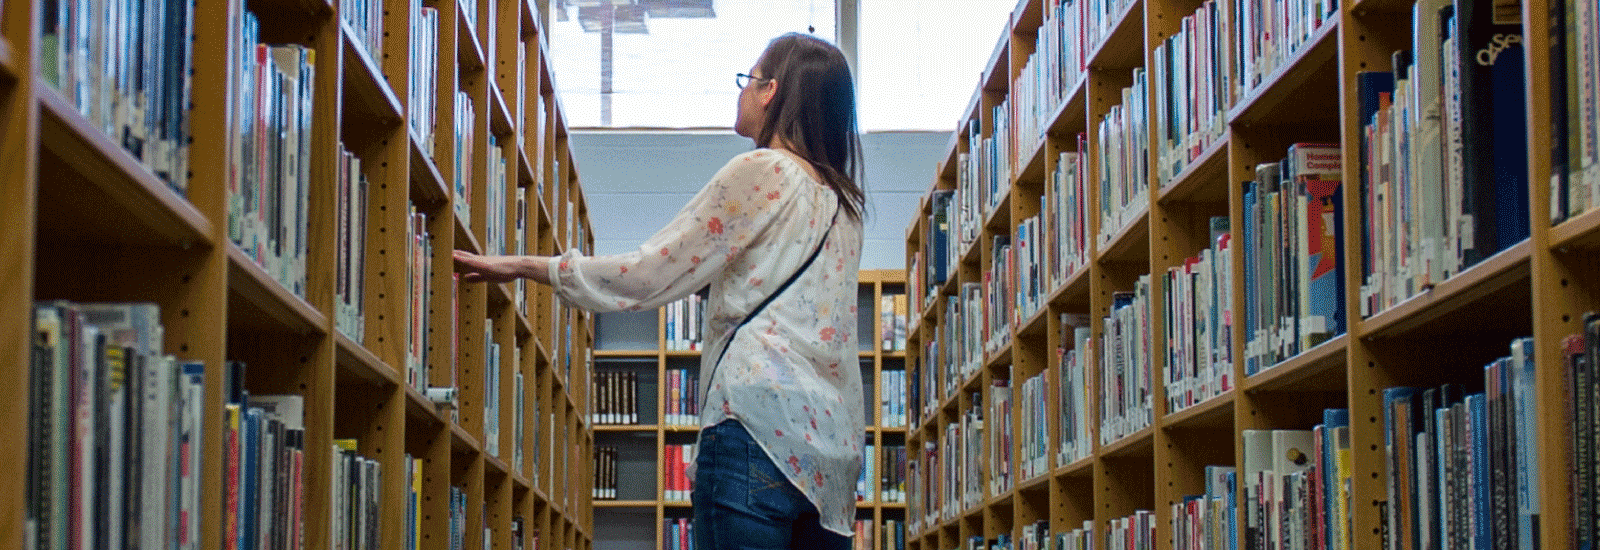 Barksdale AFB Library